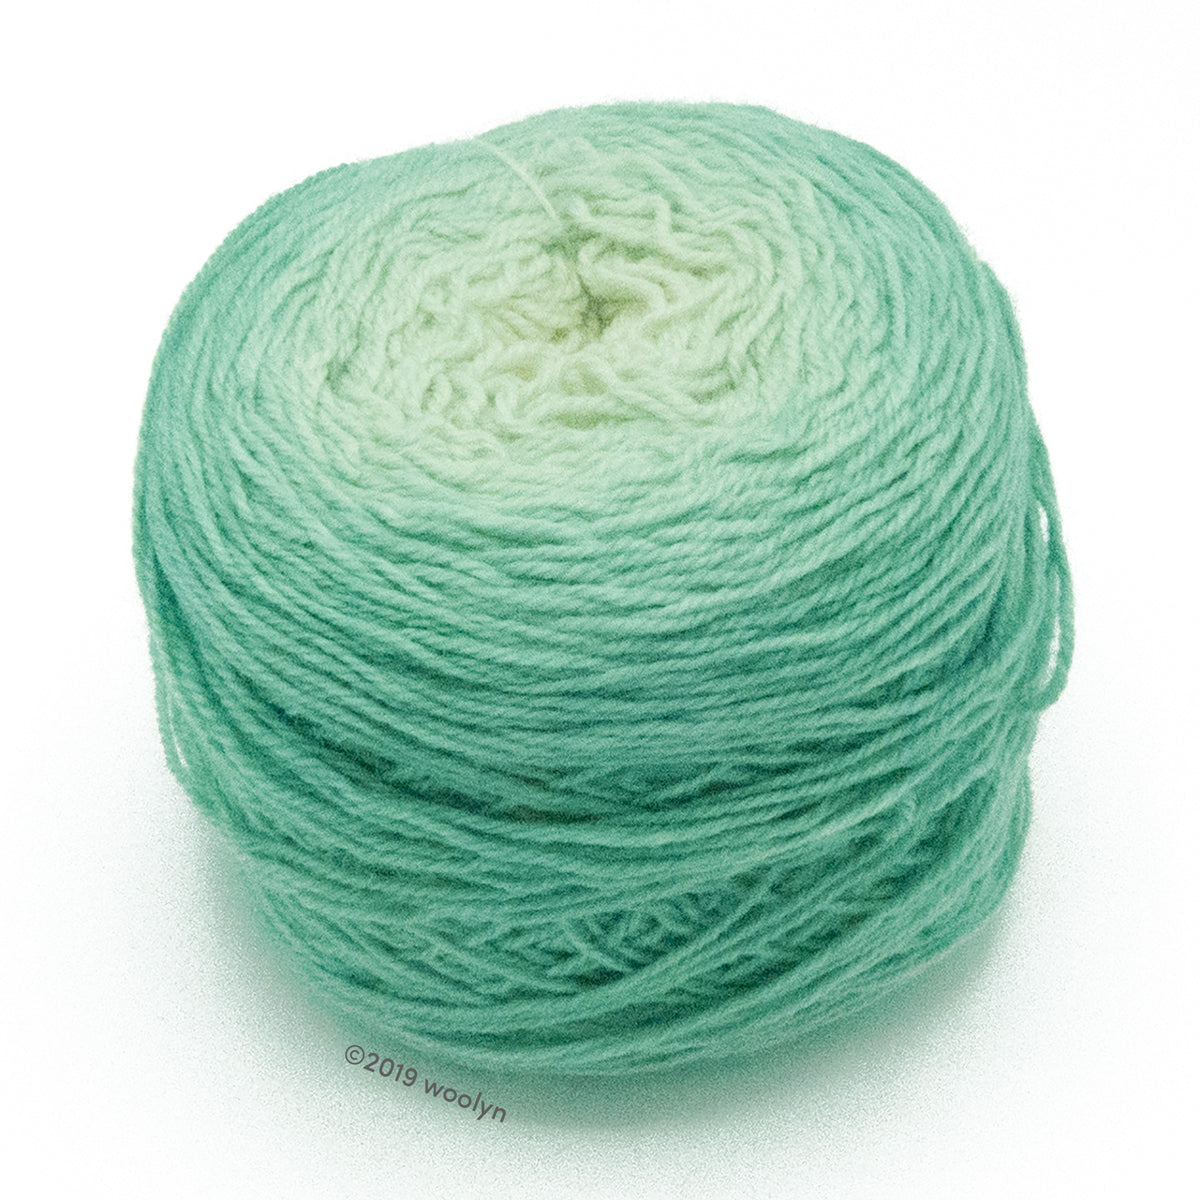 A wound cake of hand dyed fingering weight yarn from Apple Tree Knits..  Yarn is a gradient from white to light minty green.